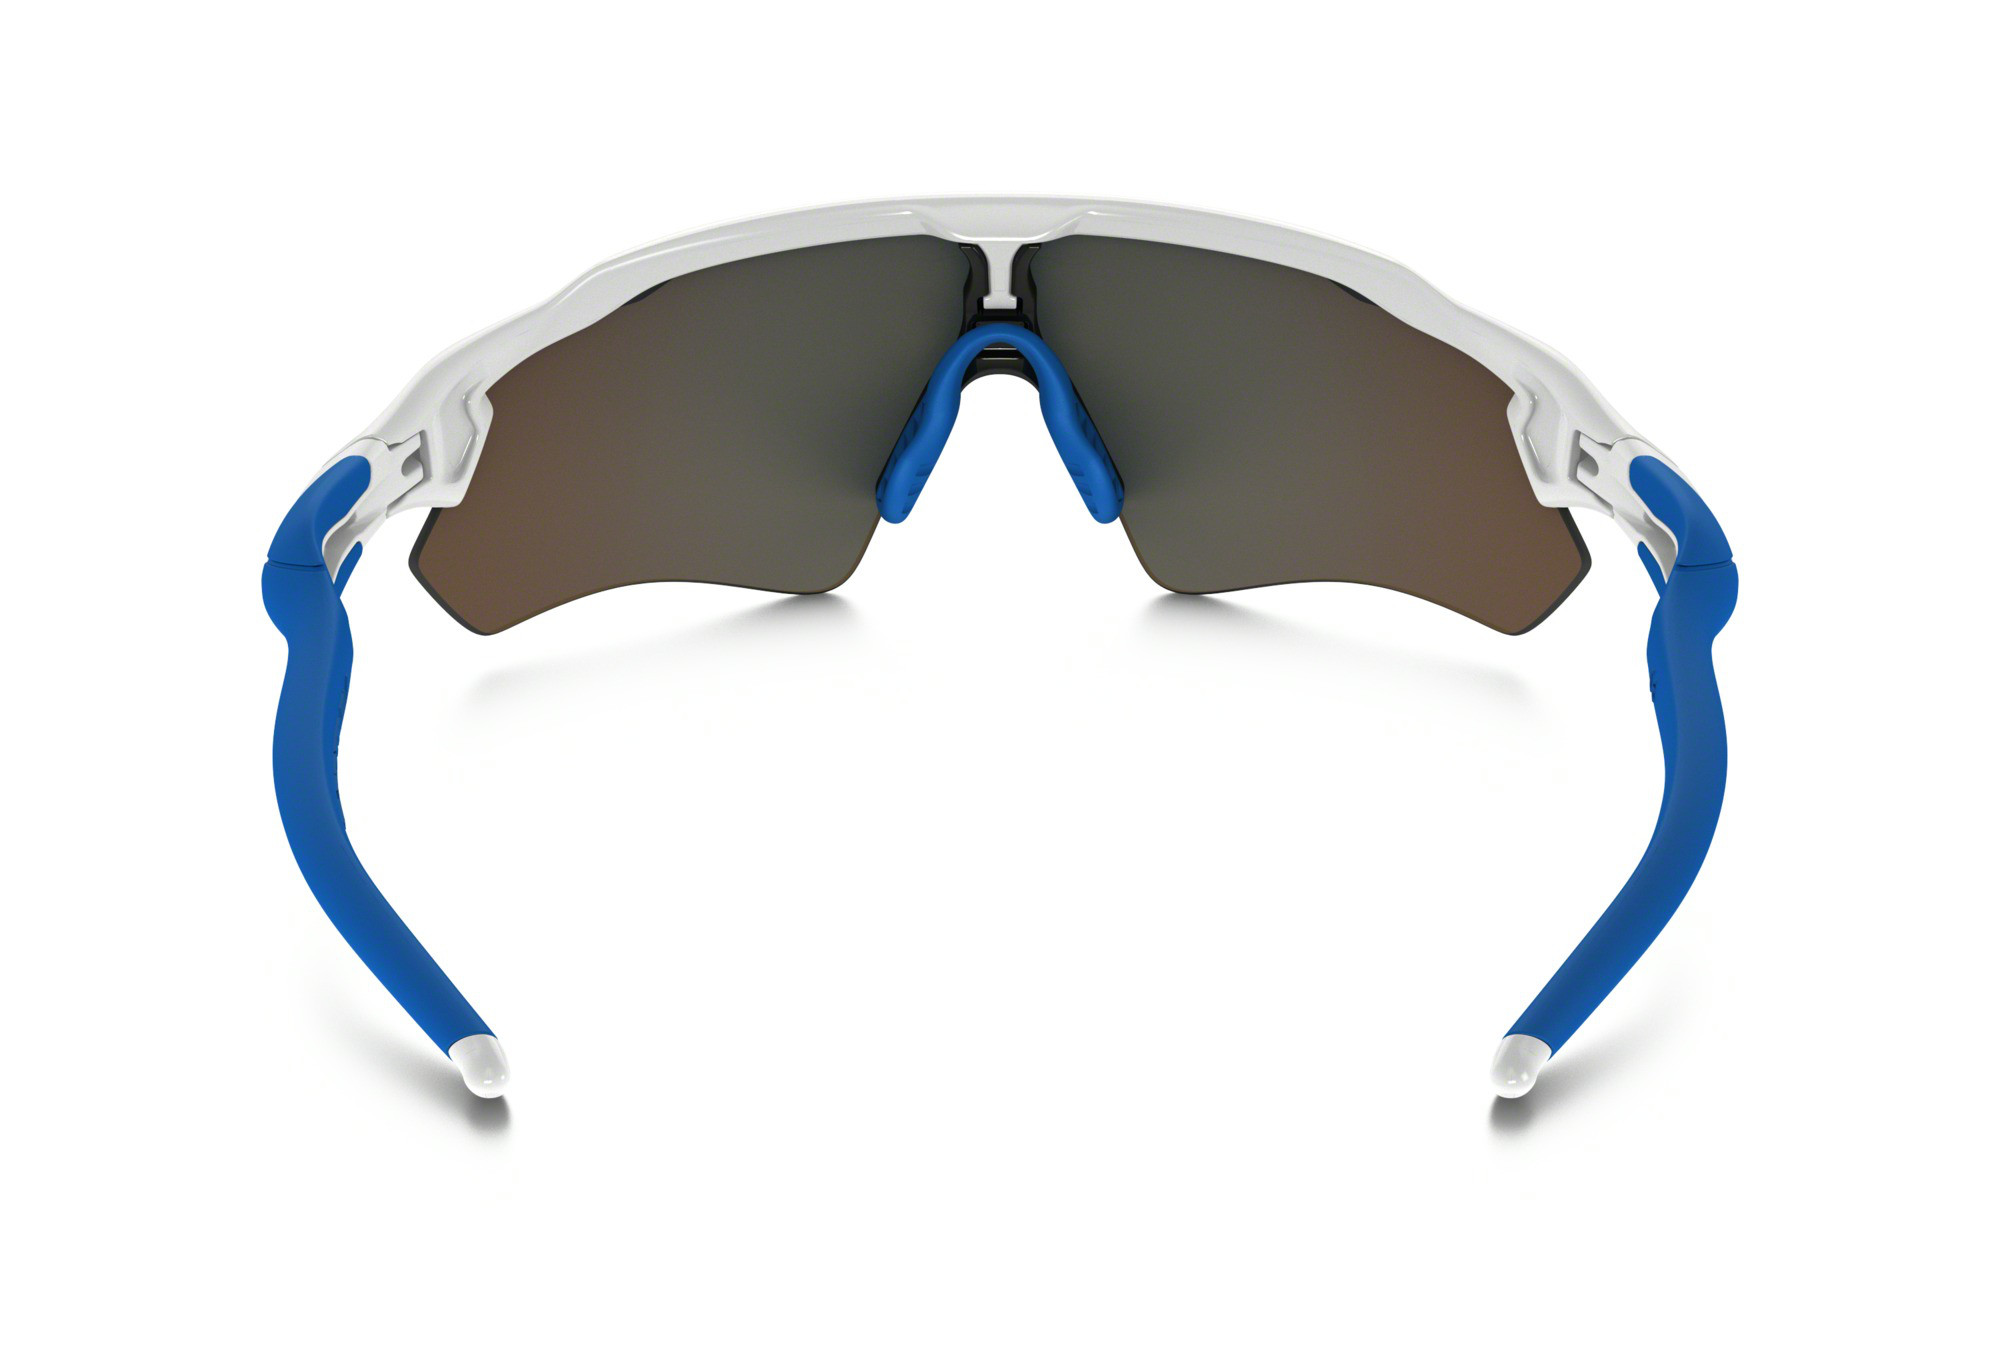 28bcdba0ca85 OAKLEY Youth Sunglasses Radar EV XS Path Polished White/Sapphire Iridium  Ref OJ9001-0131